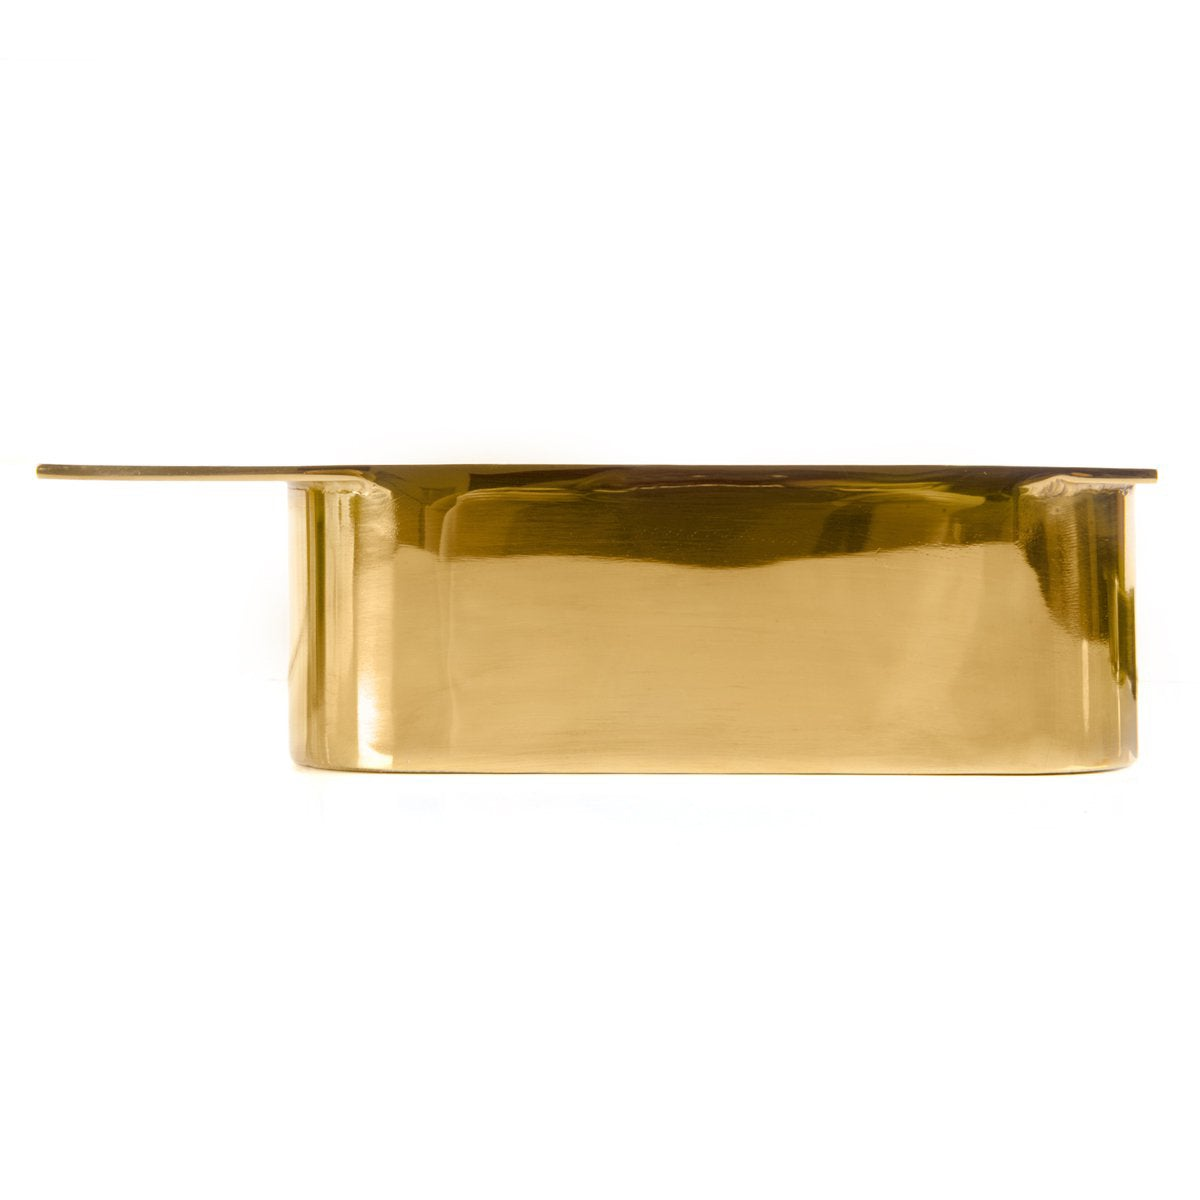 Pill leg for furniture with polished brass finish and wide, integrated mounting plate.